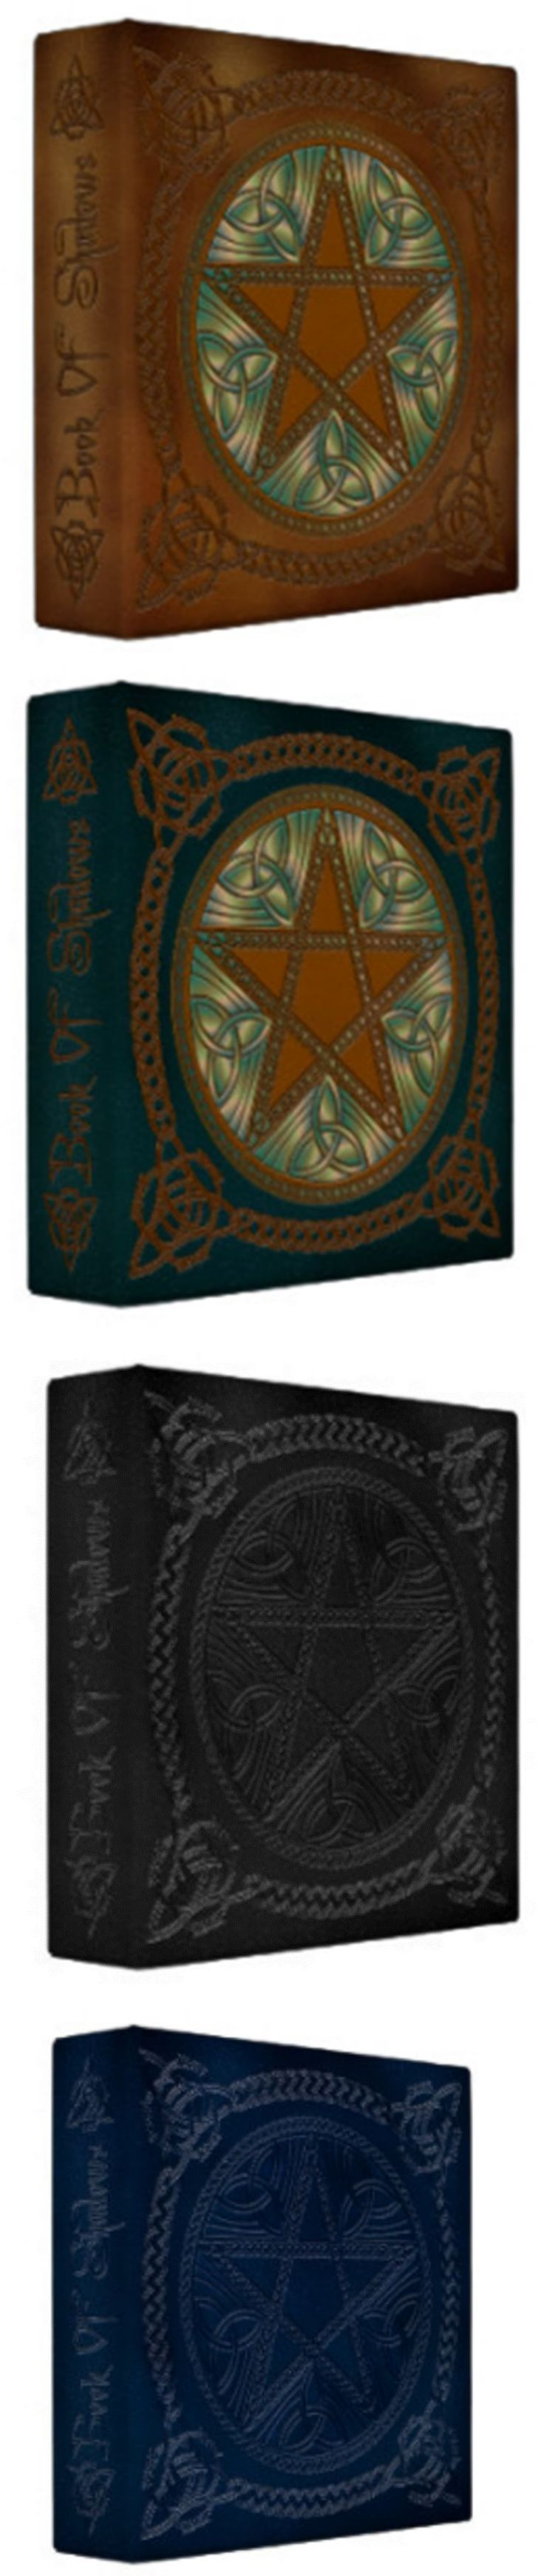 Other Craft Storage 183187: Pentagram Pentacle Book Of Shadows 3 Ring Binder Printed Faux Leather Design -> BUY IT NOW ONLY: $33 on eBay!